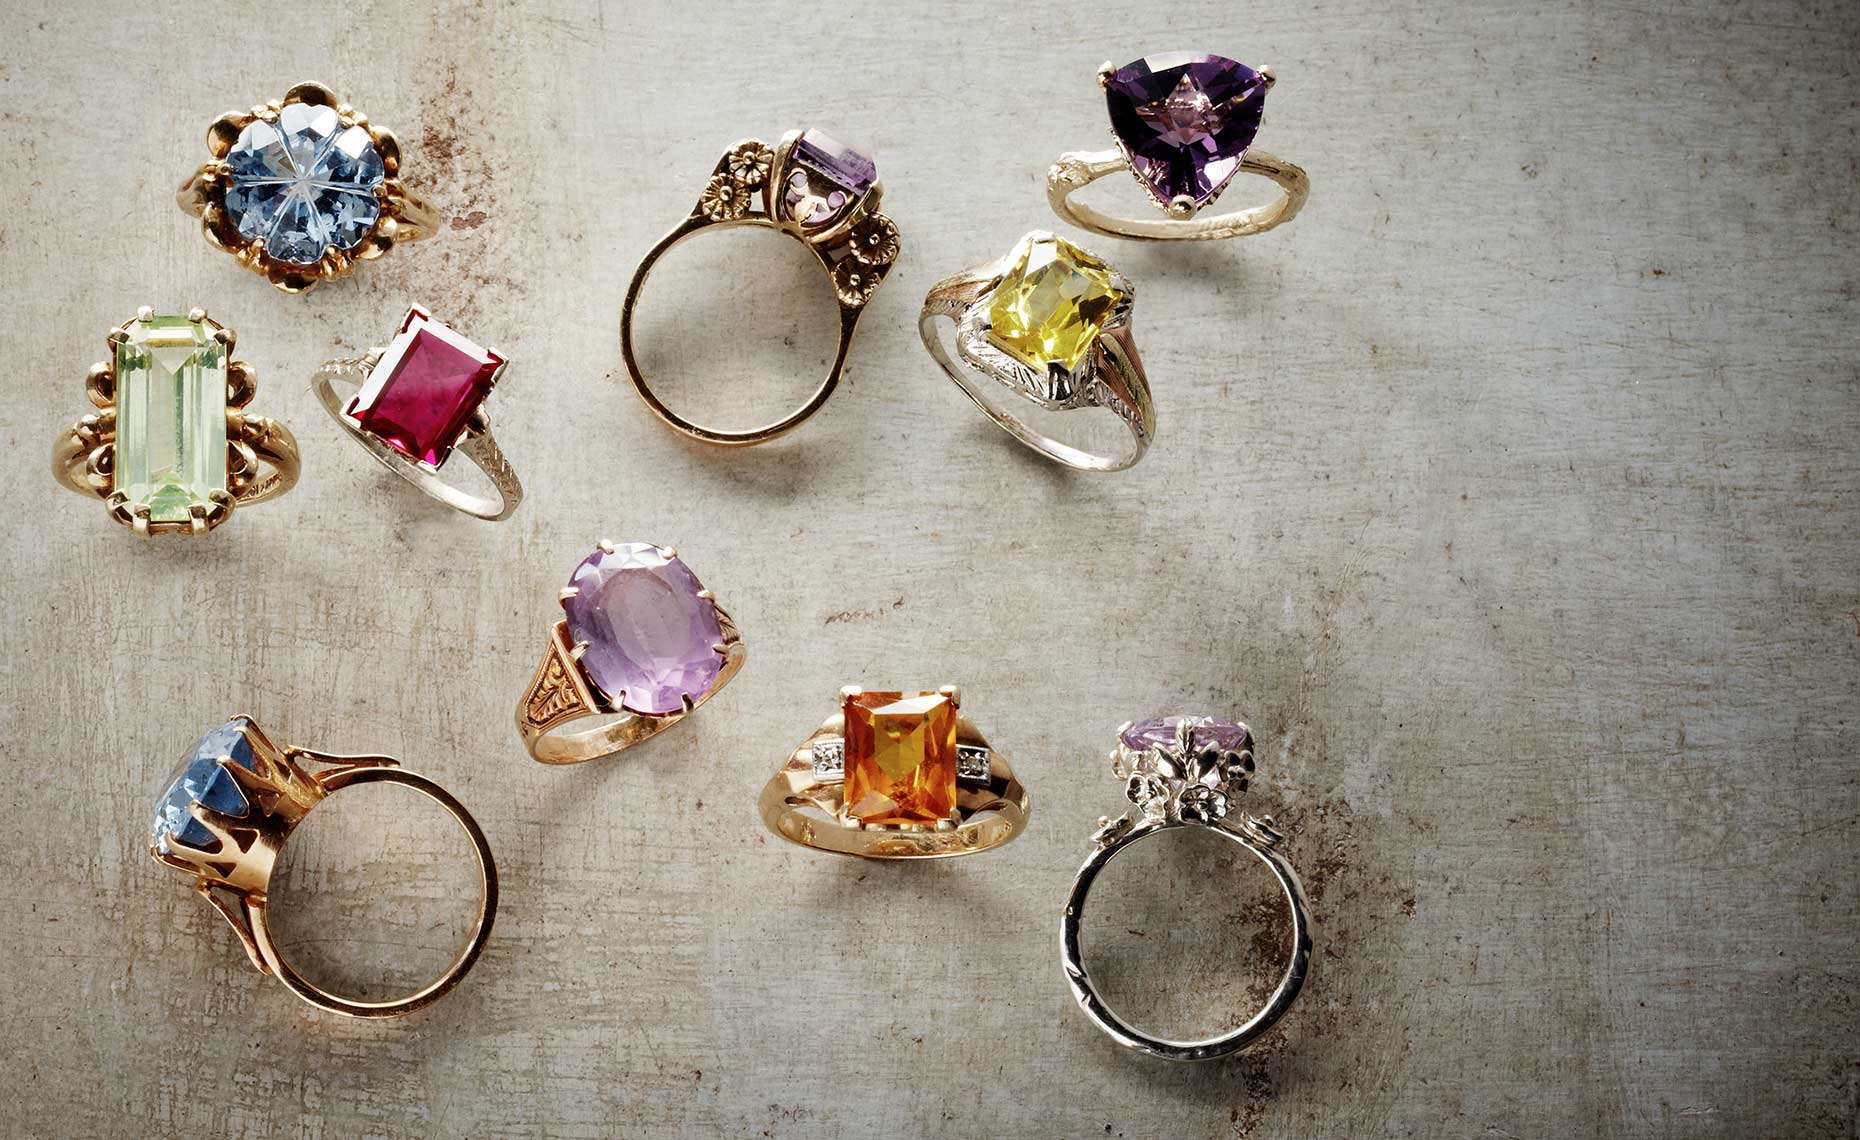 Jewelry photography showing colorful rings.